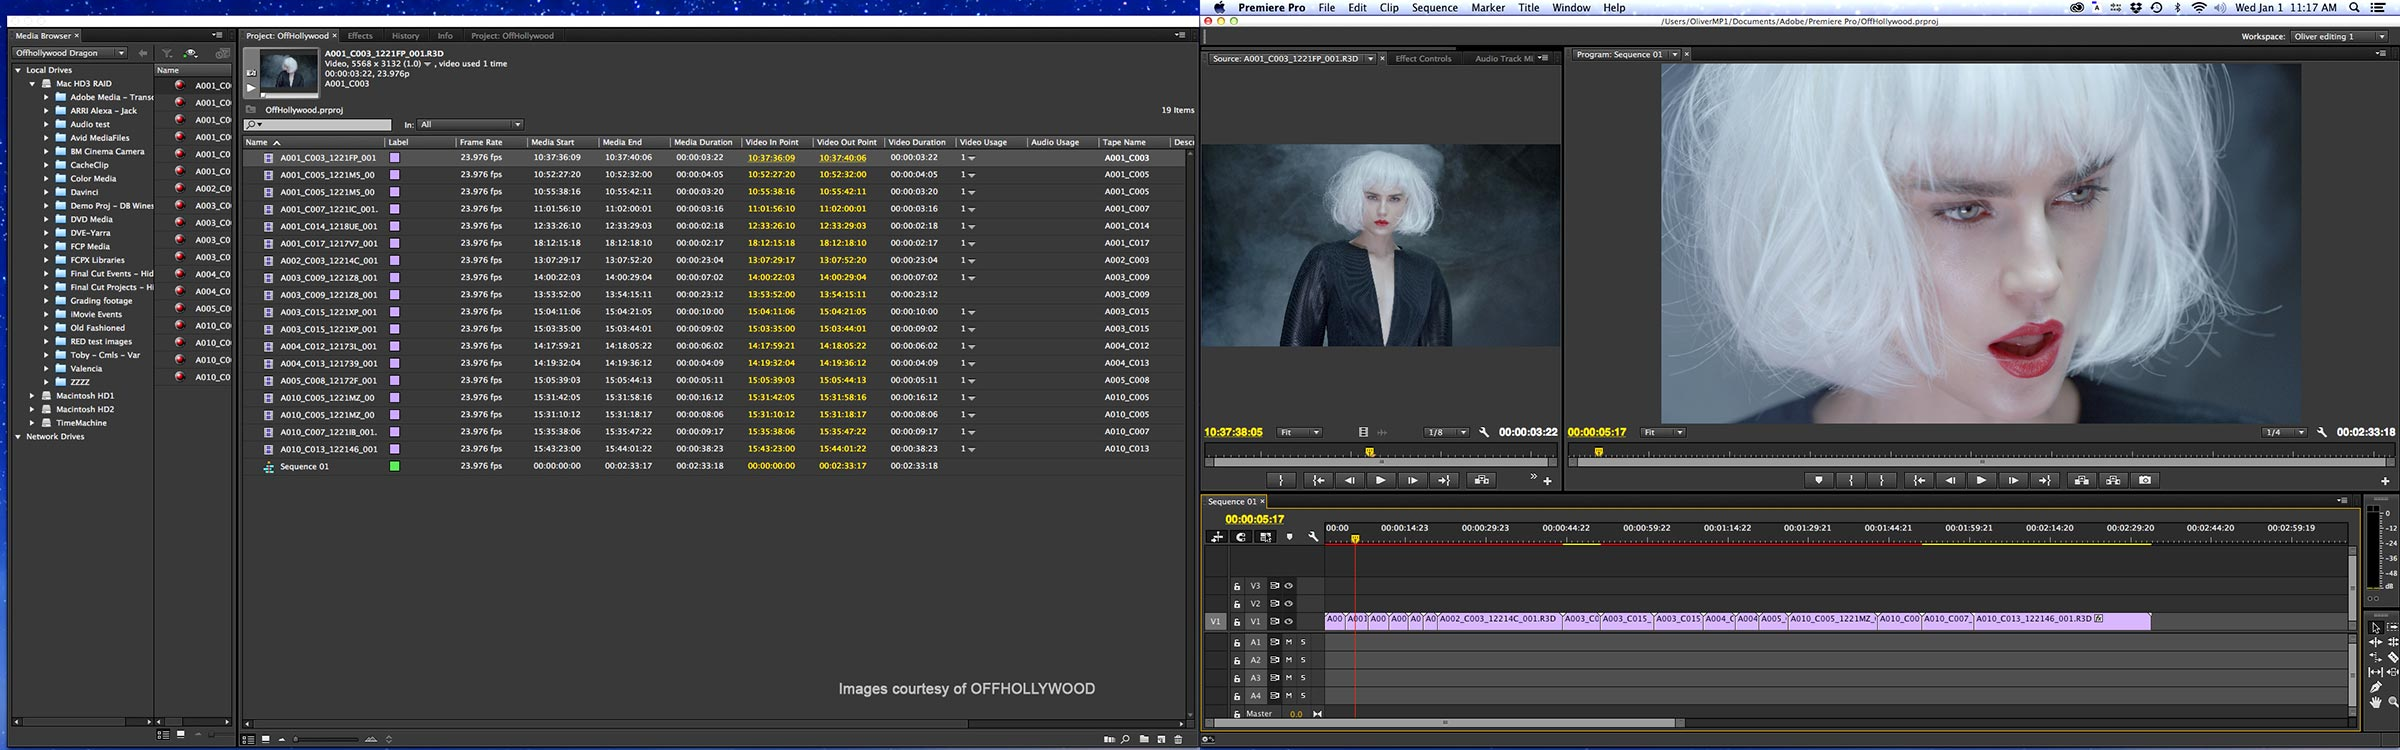 Premiere pro on 2 screens